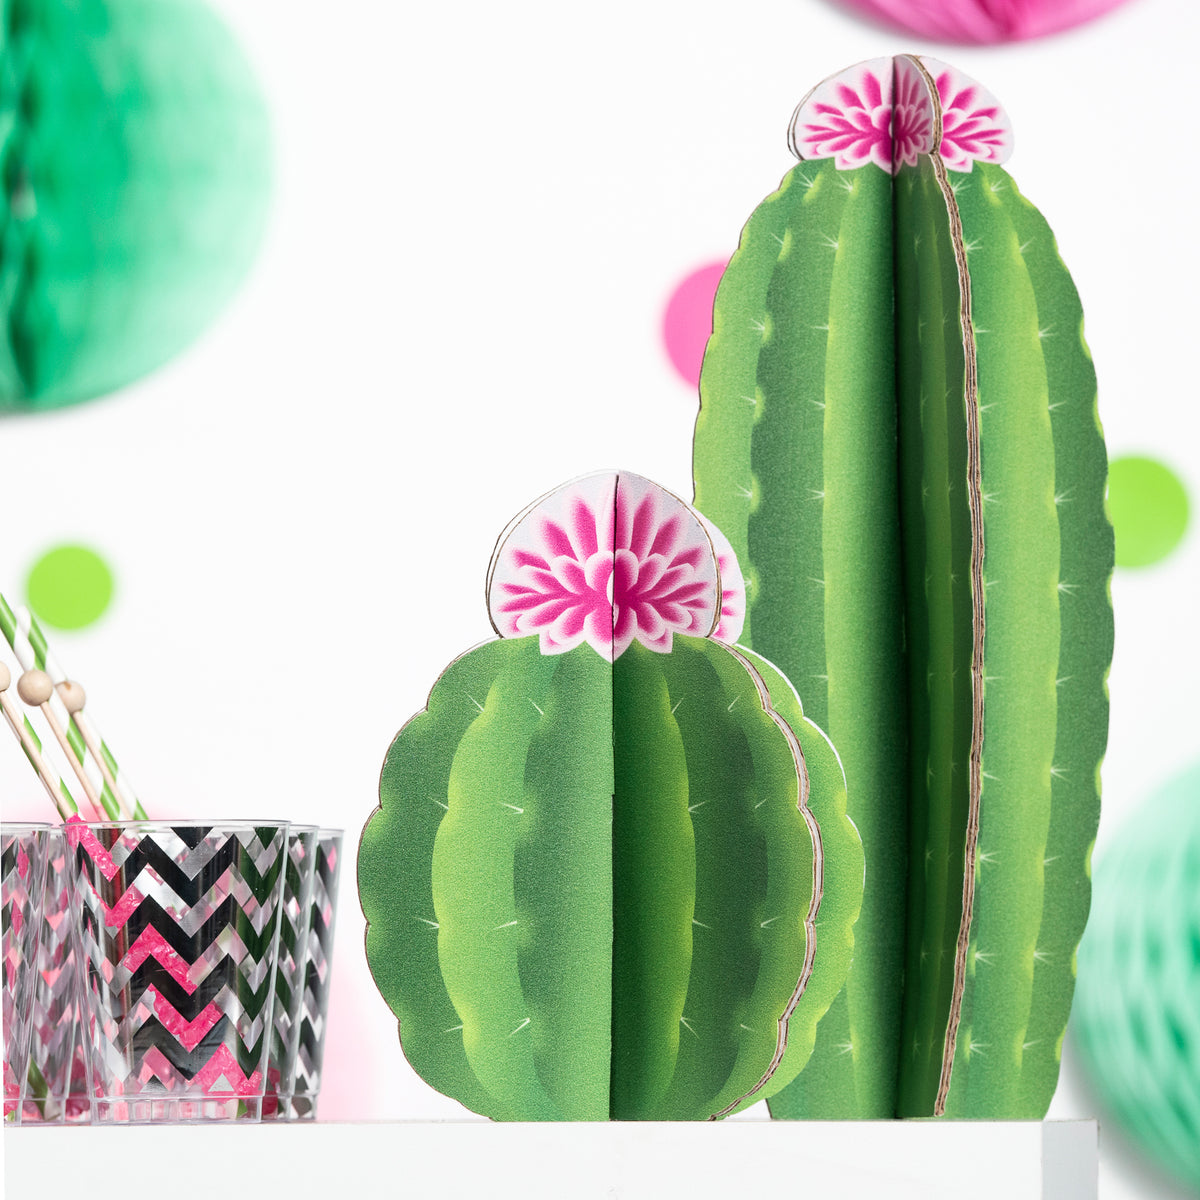 9 in. to 1 ft. 6 in. Slotted Cactus Centerpieces